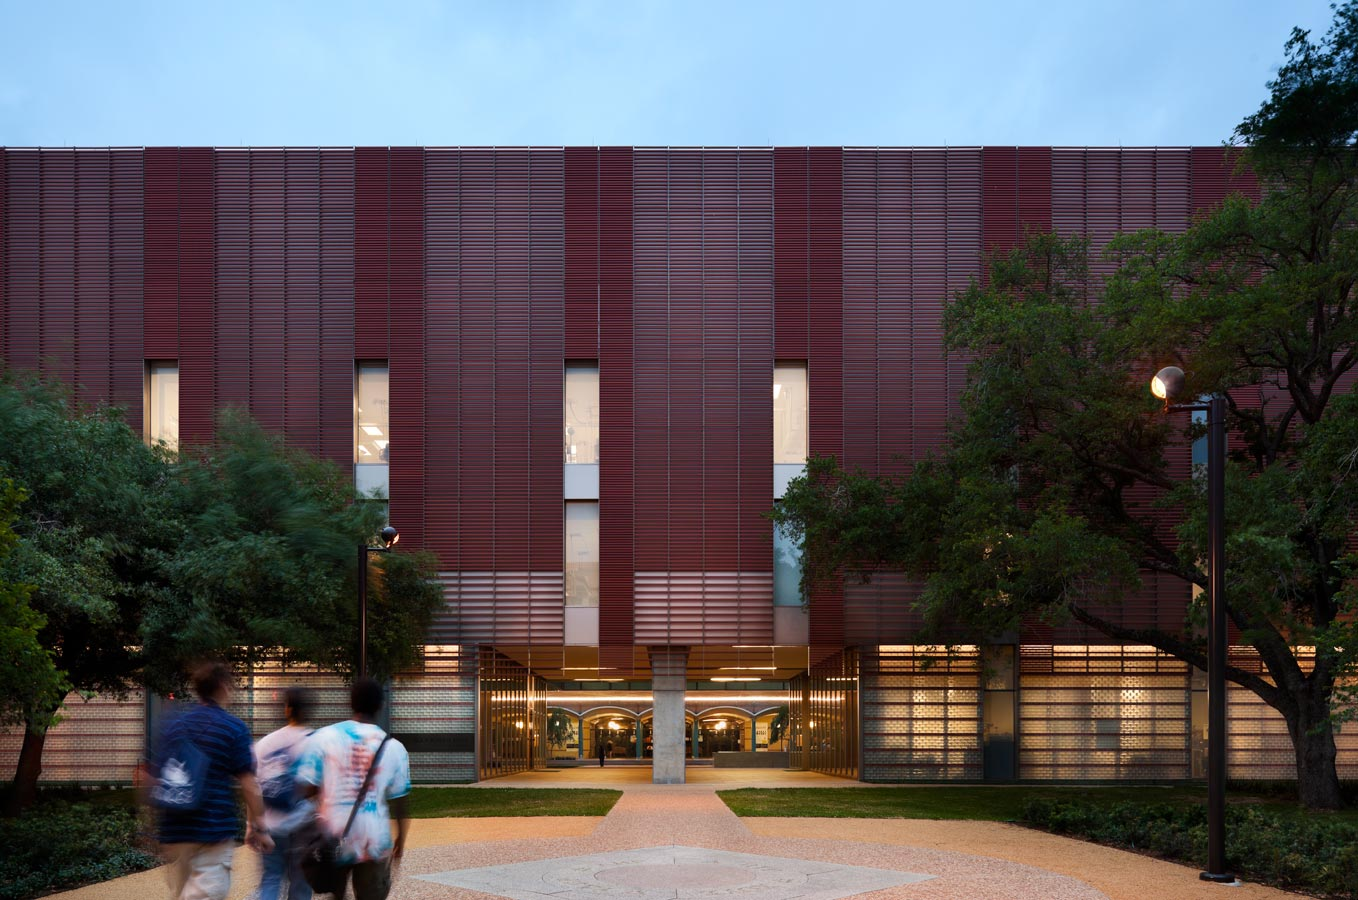 <p>Horizontal terra-cotta baguettes over aluminum rain screen panels protect the labs from solar exposure while regulating natural light and privacy. This south facade completes the courtyard for George R. Brown Hall, and creates a portal to the Science Quad. <br><small>&copy; Peter Aaron/OTTO</small></p>